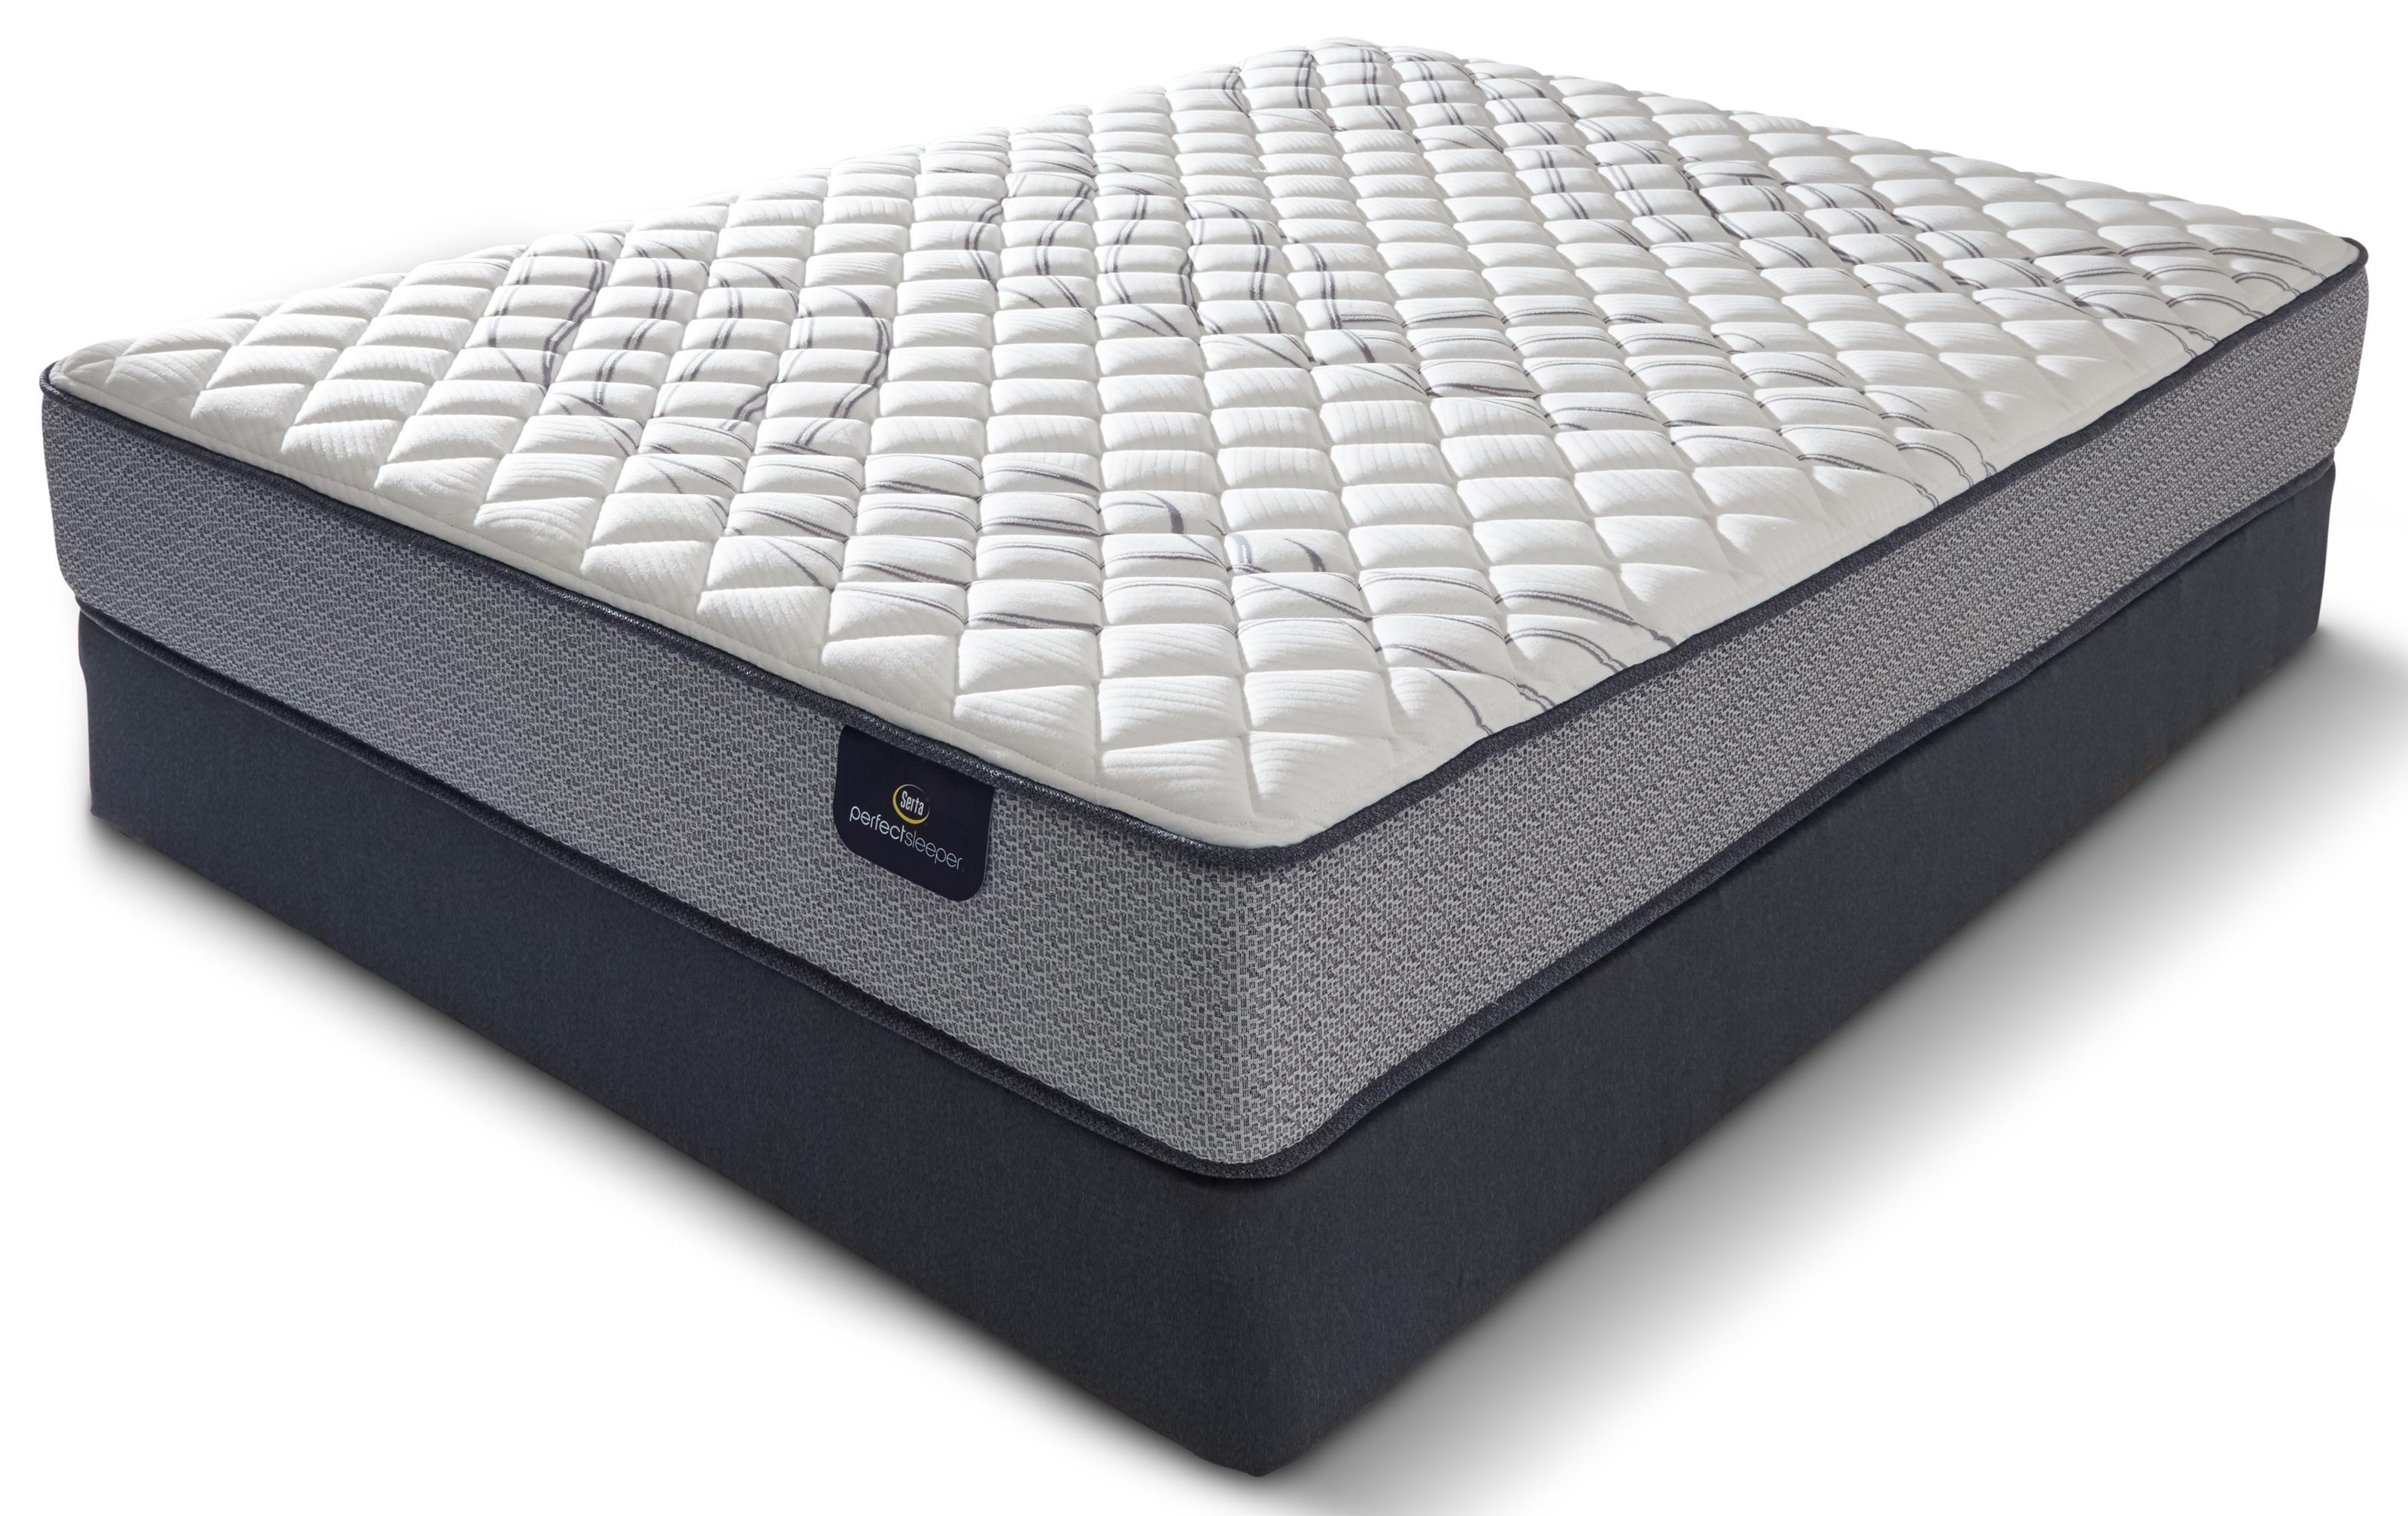 JAMES QN JAMES FIRM MATTRESS by Serta Canada at Stoney Creek Furniture